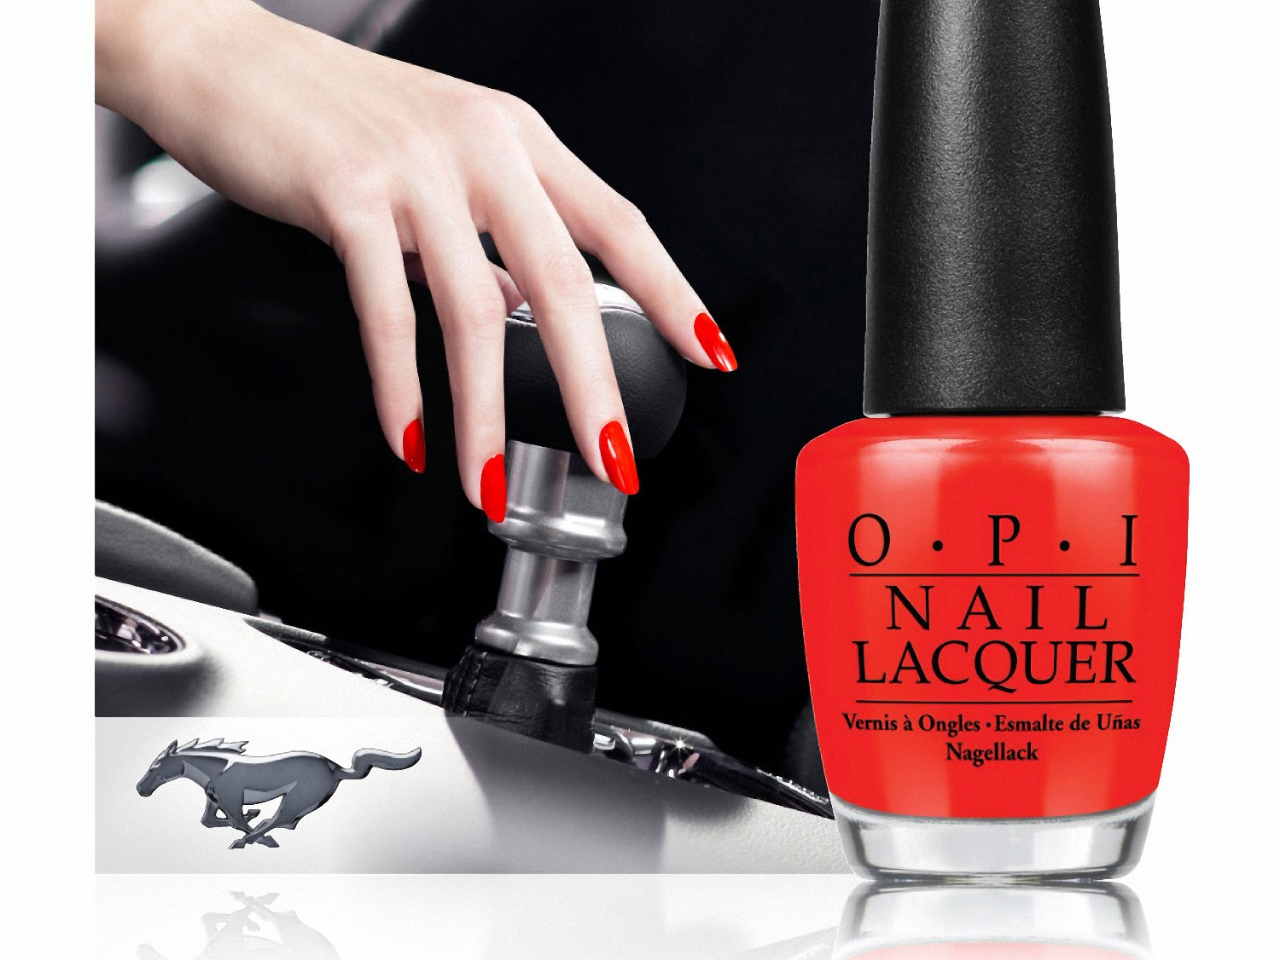 Iconic Pony Car Inspires Limited Edition OPI Nail Polish Line